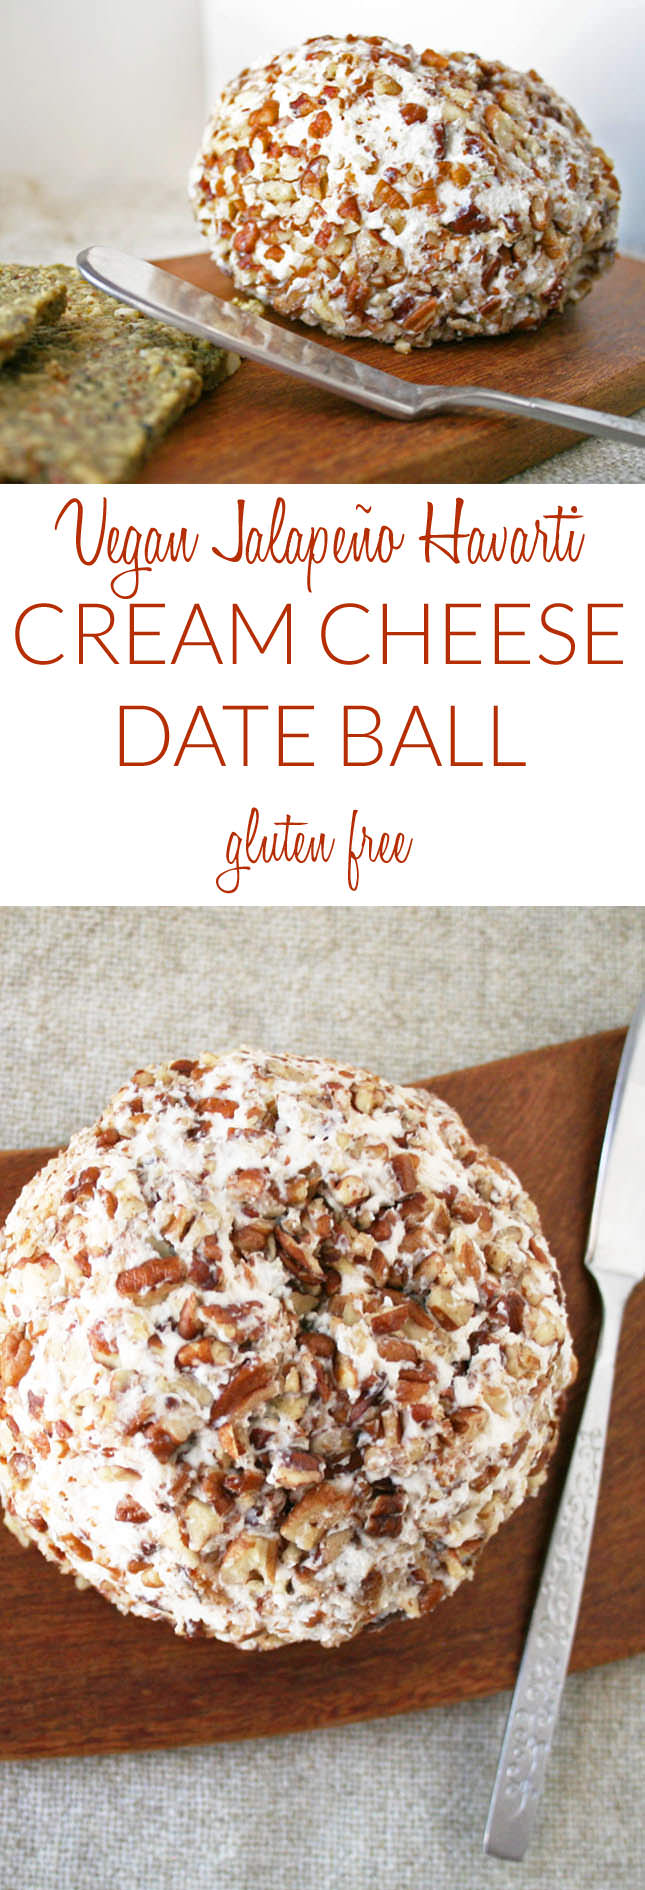 Vegan Jalapeño Havarti Cream Cheese Date Ball collage photo with two photos and text in between.